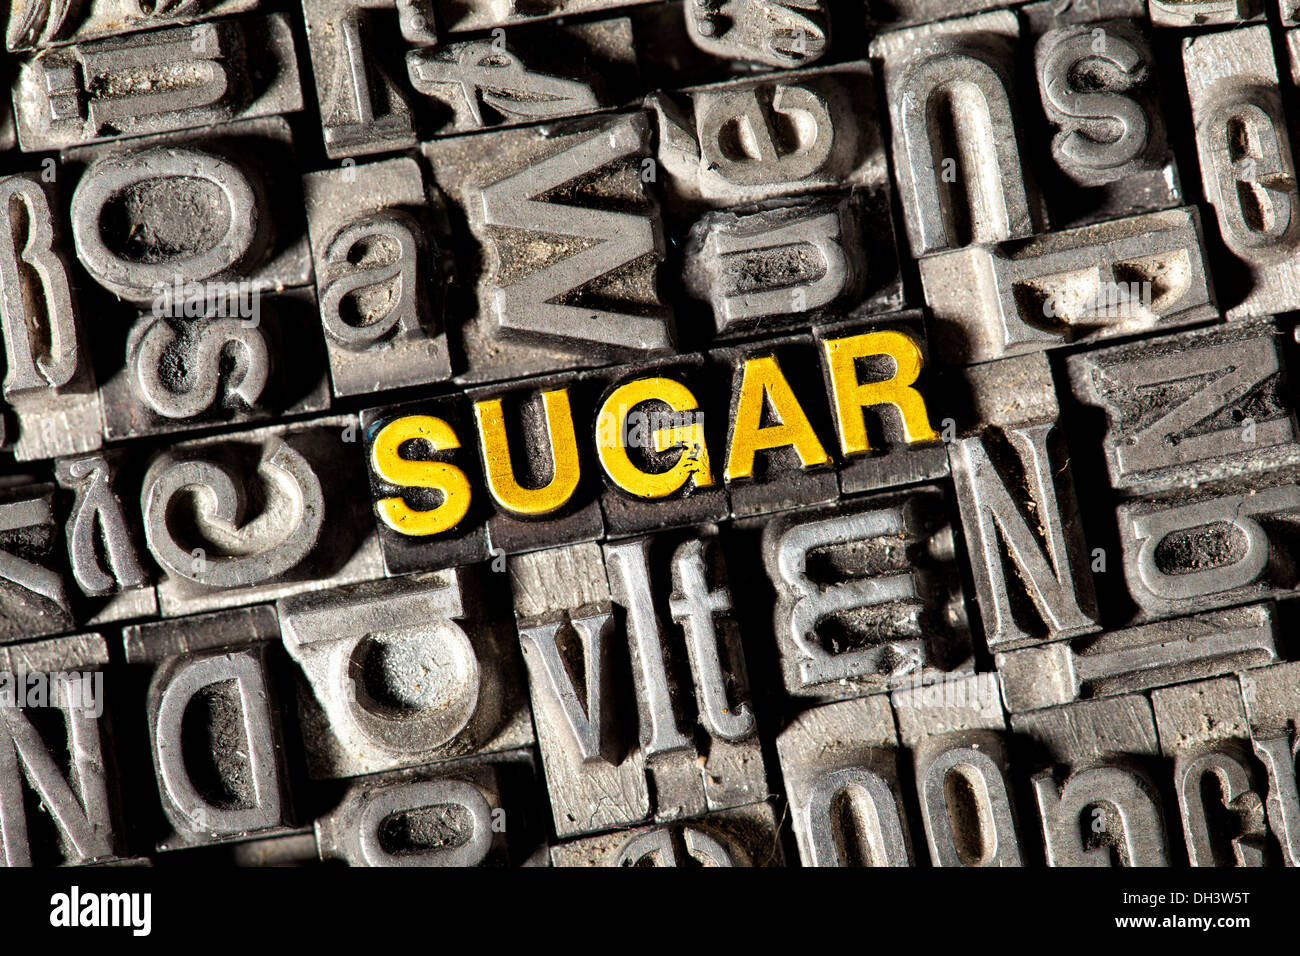 Old lead letters forming the word 'SUGAR' - Stock Image